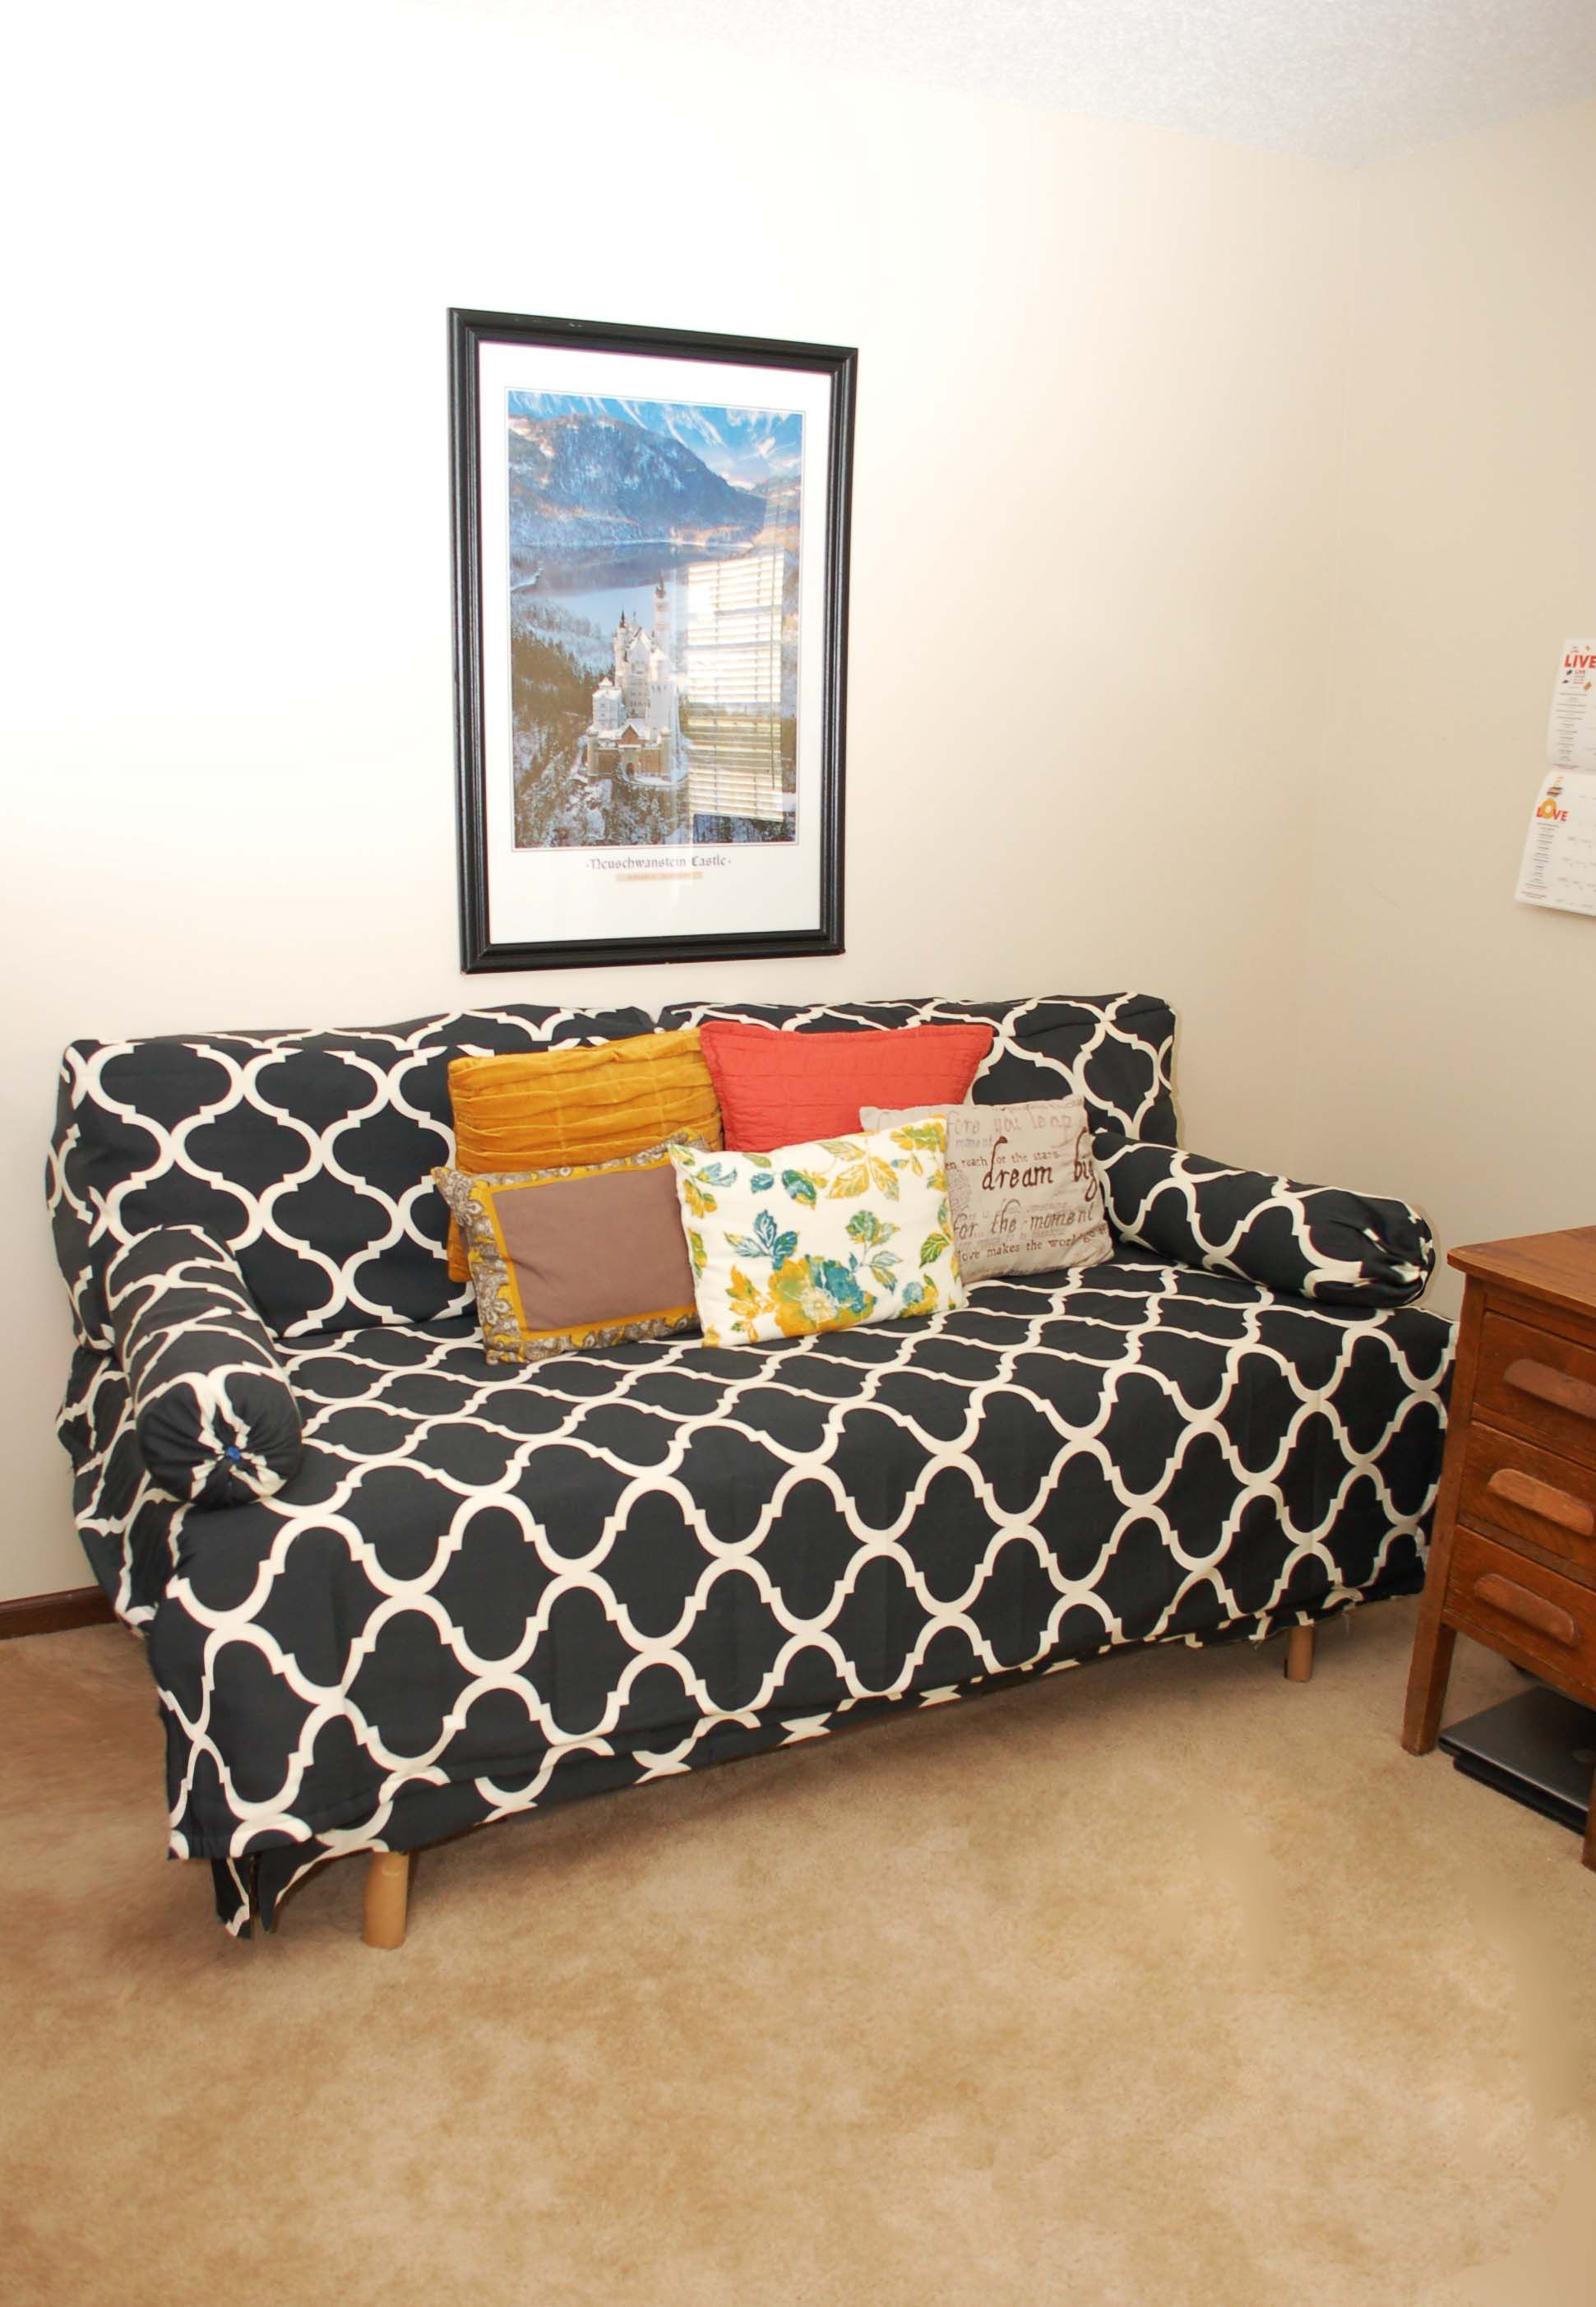 Twin Bed Daybed Sofa Very Resourceful Use Of Items How To Make Bed Furniture Room